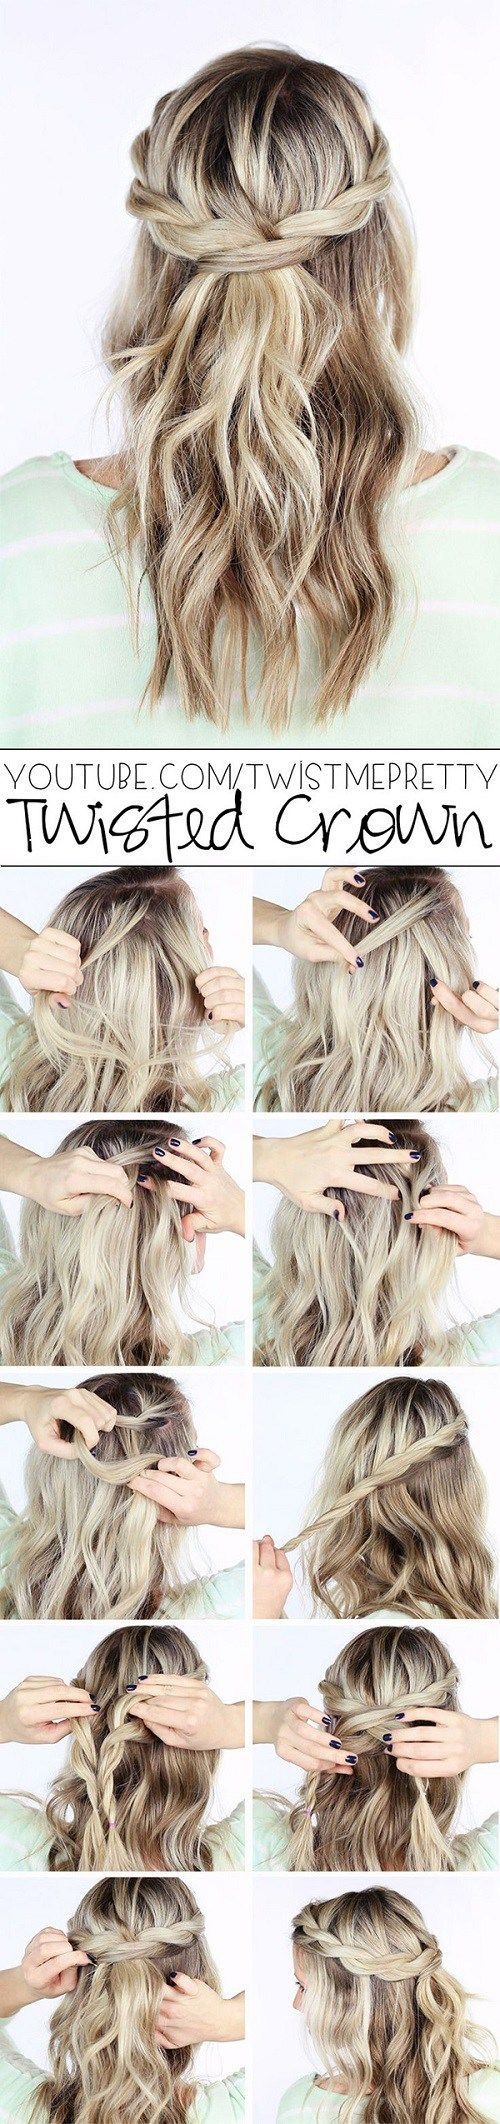 Braided Half Updo Tutorial